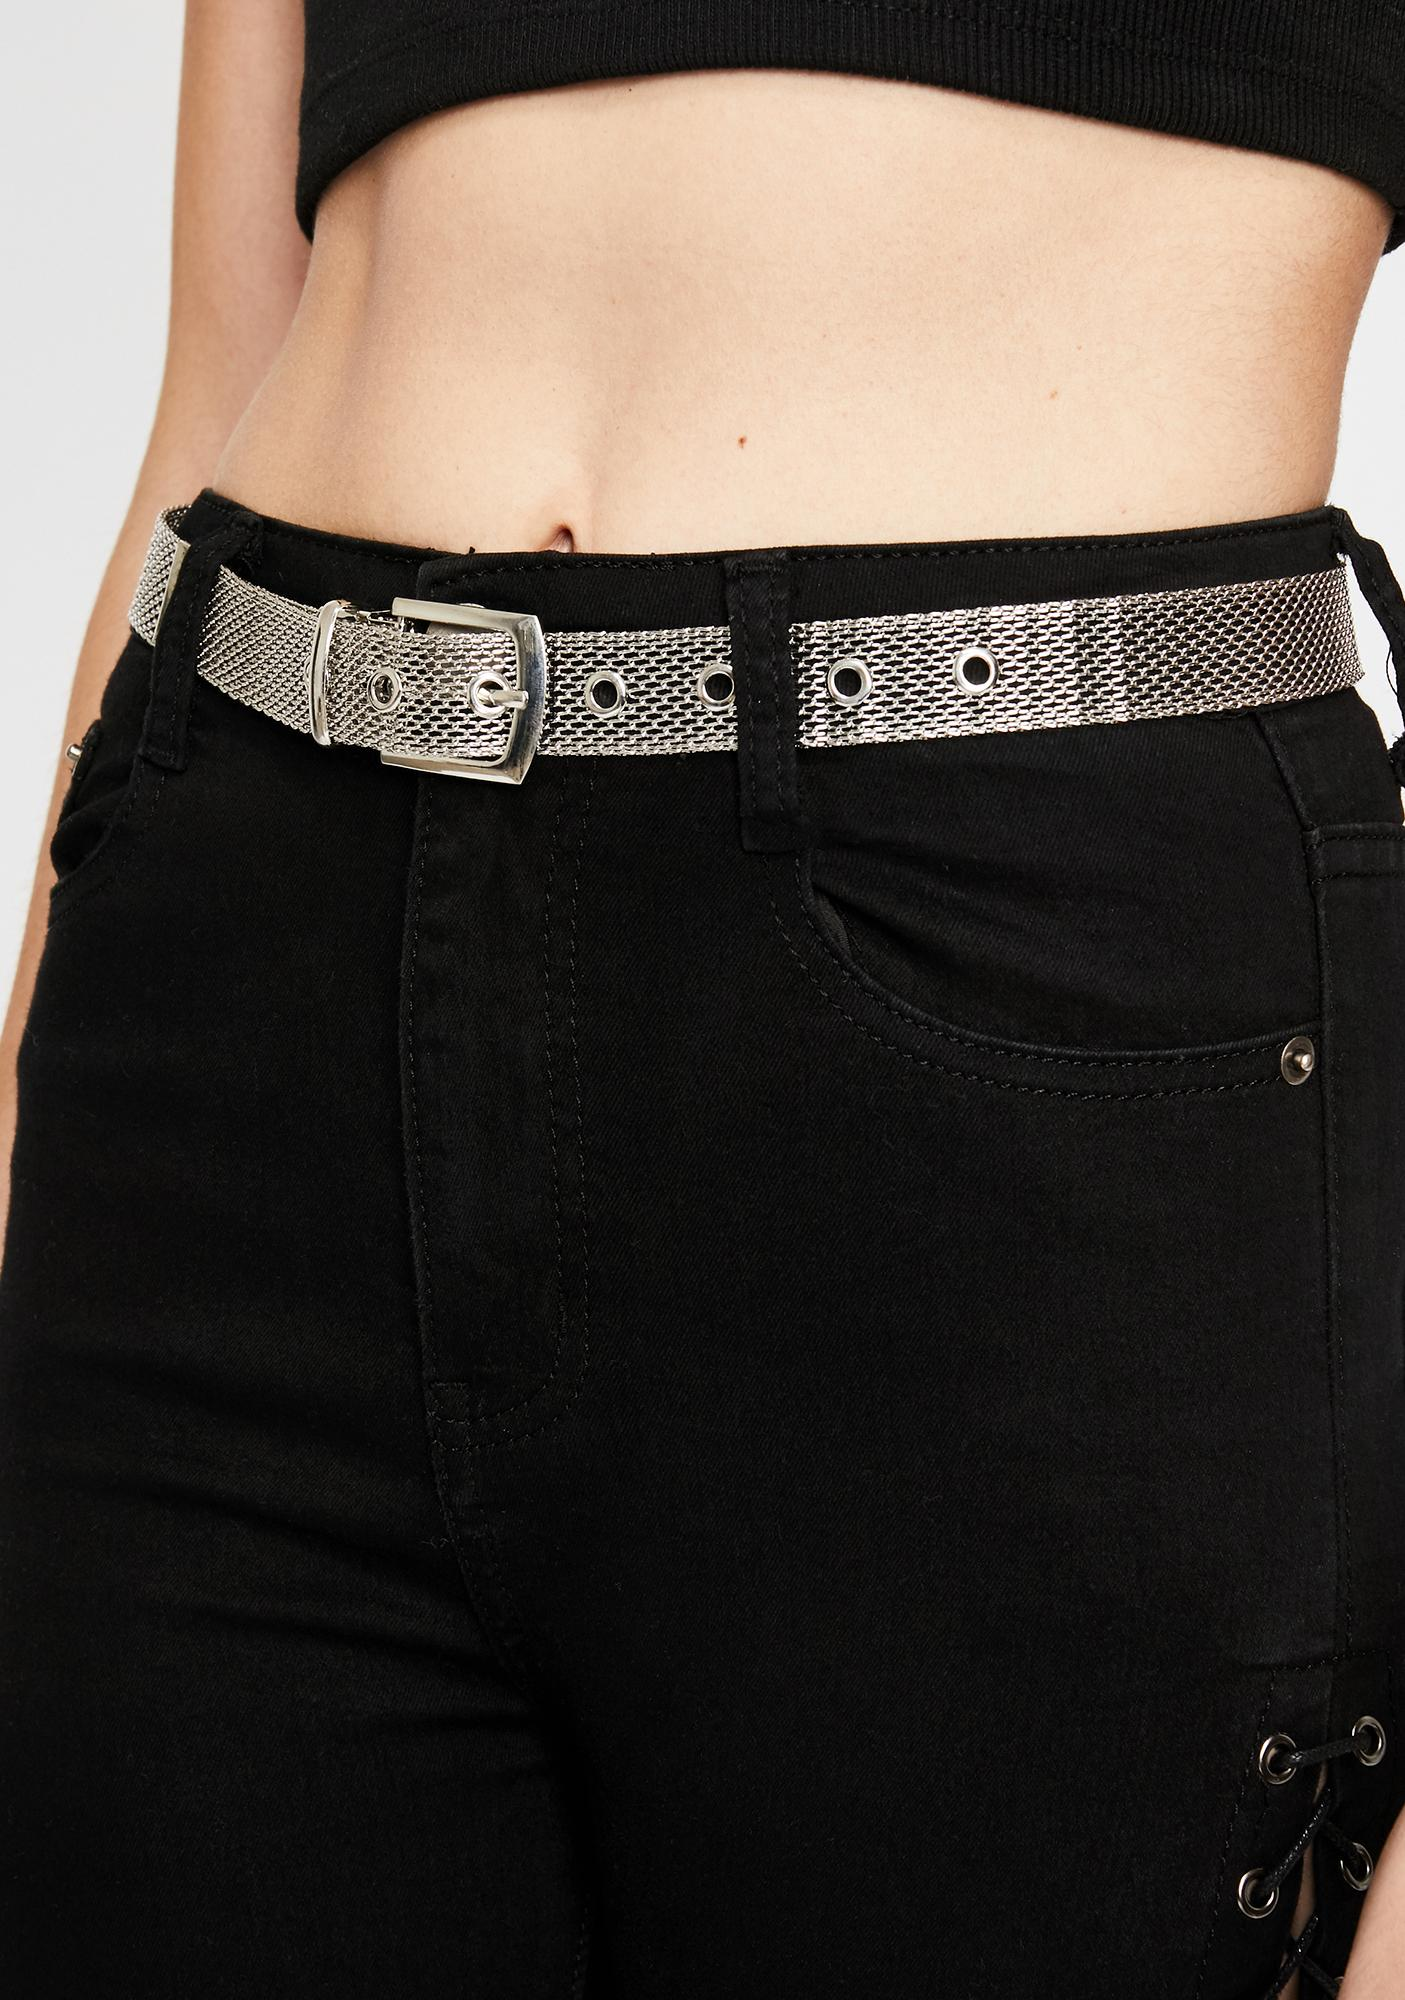 Bad Attitude Chainmail Belt